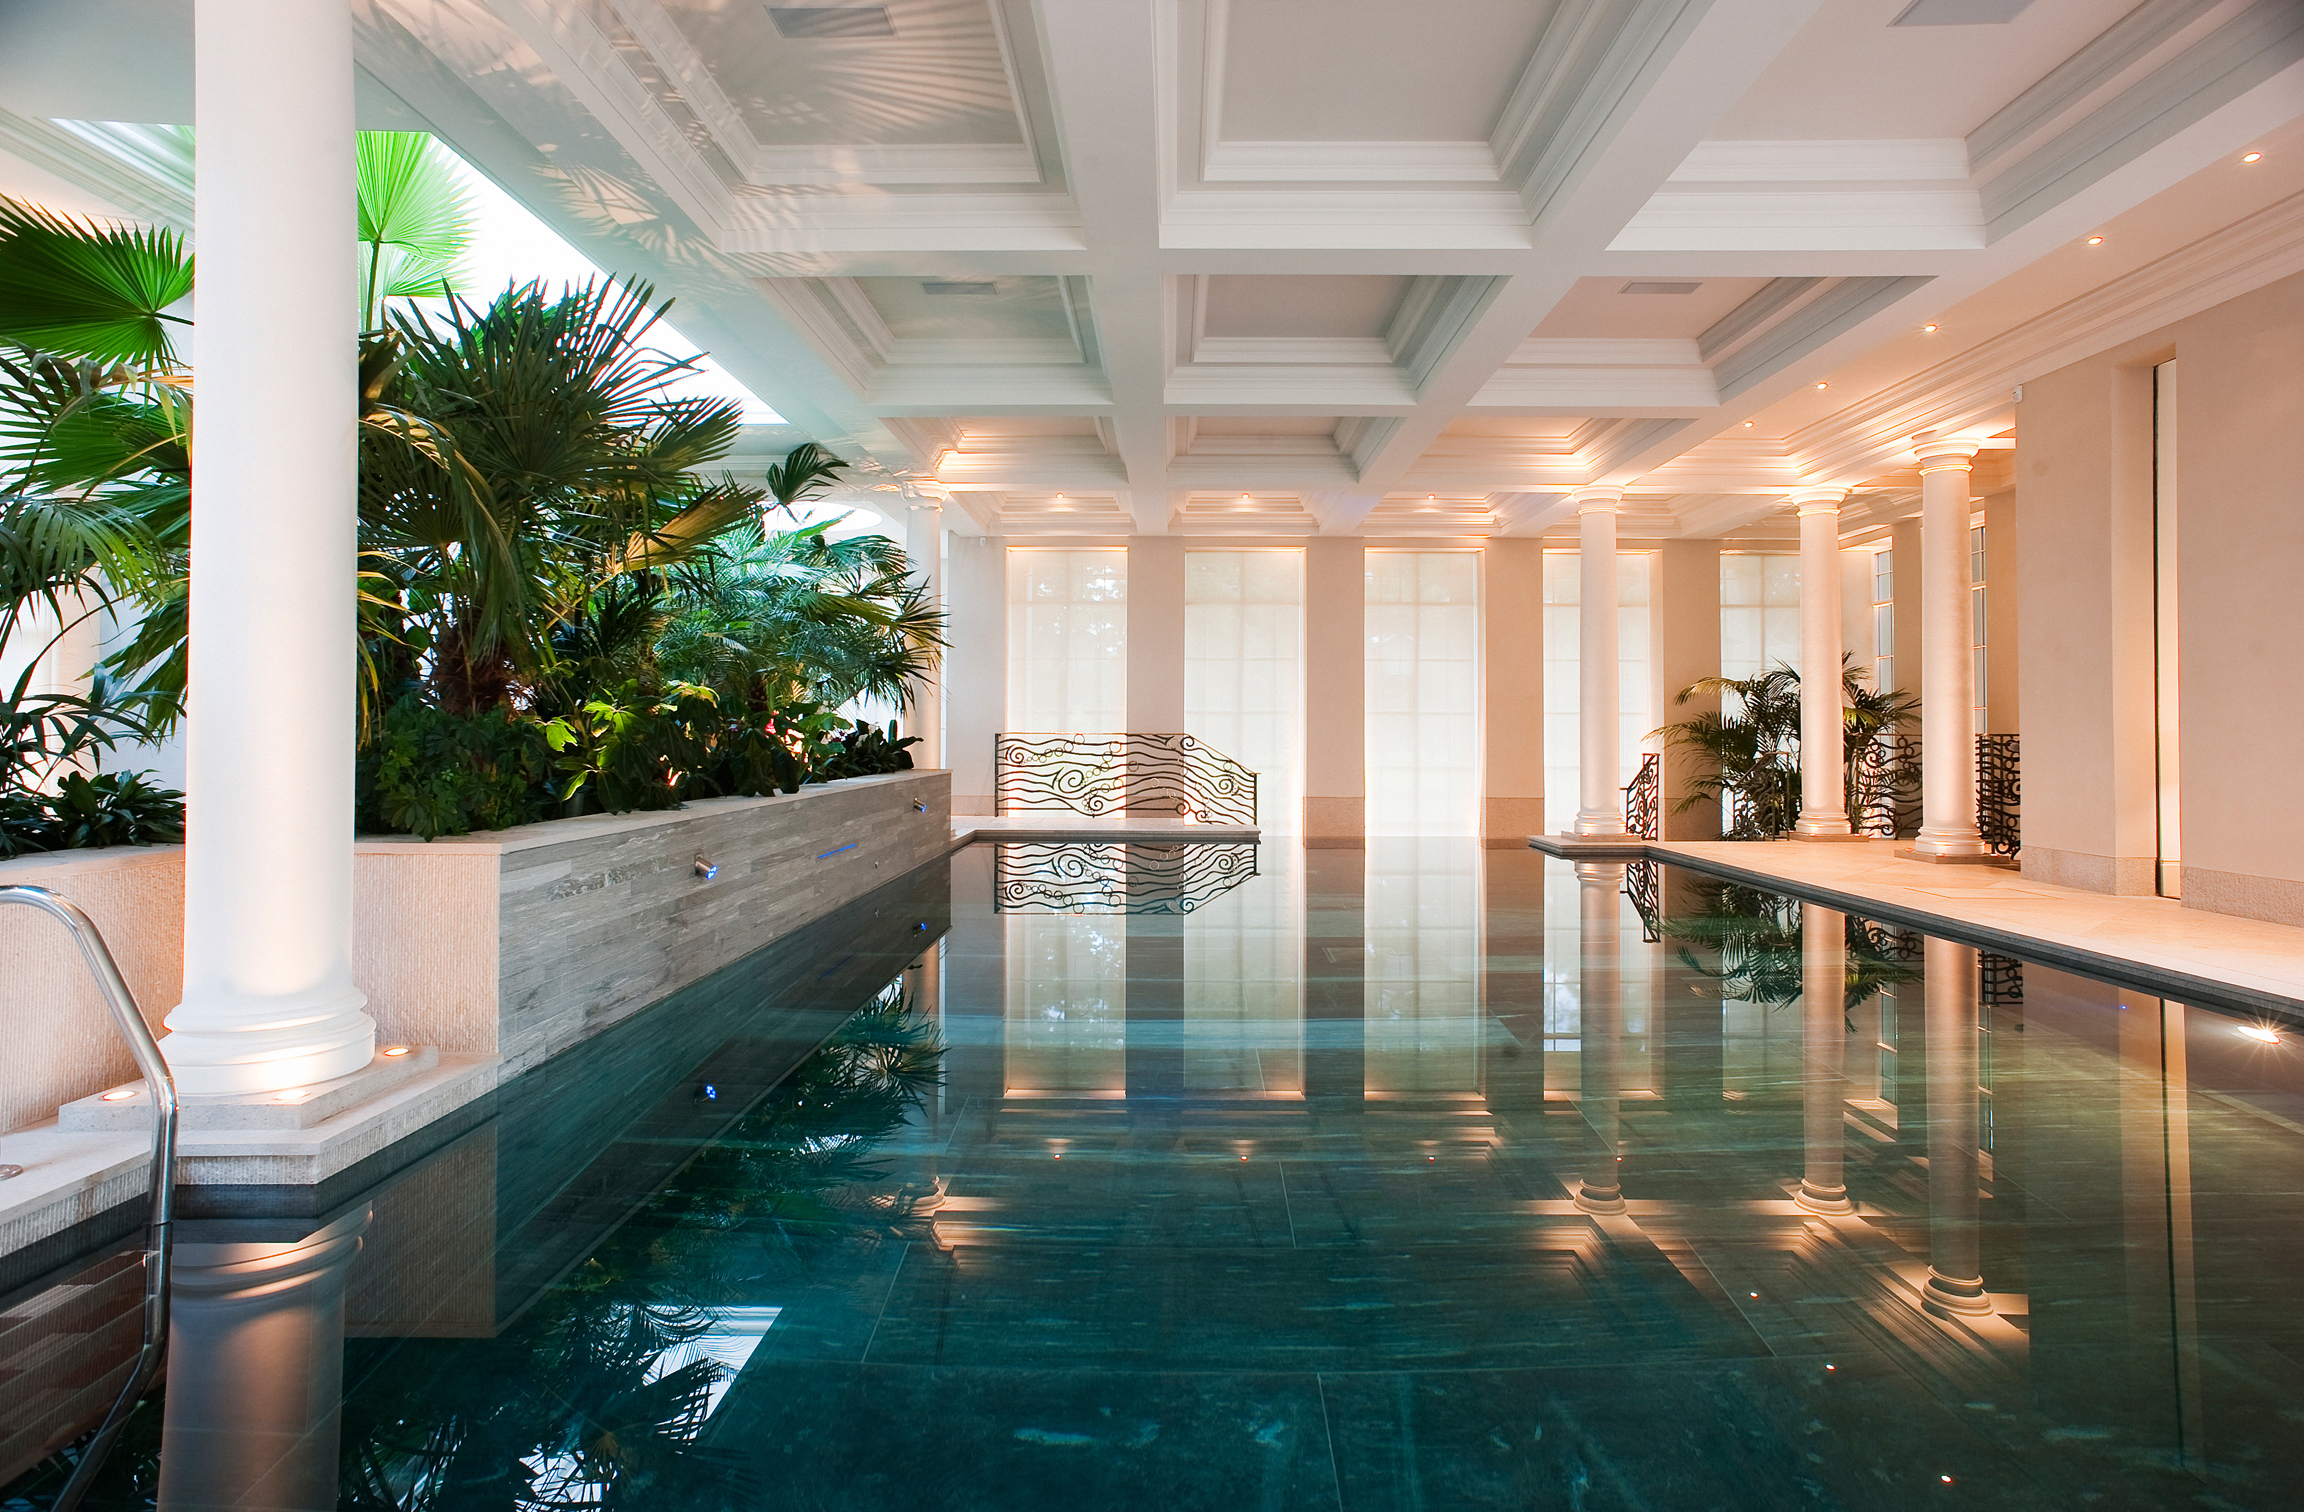 Cheshire Wellness Swimming Pools Spas Experience Room